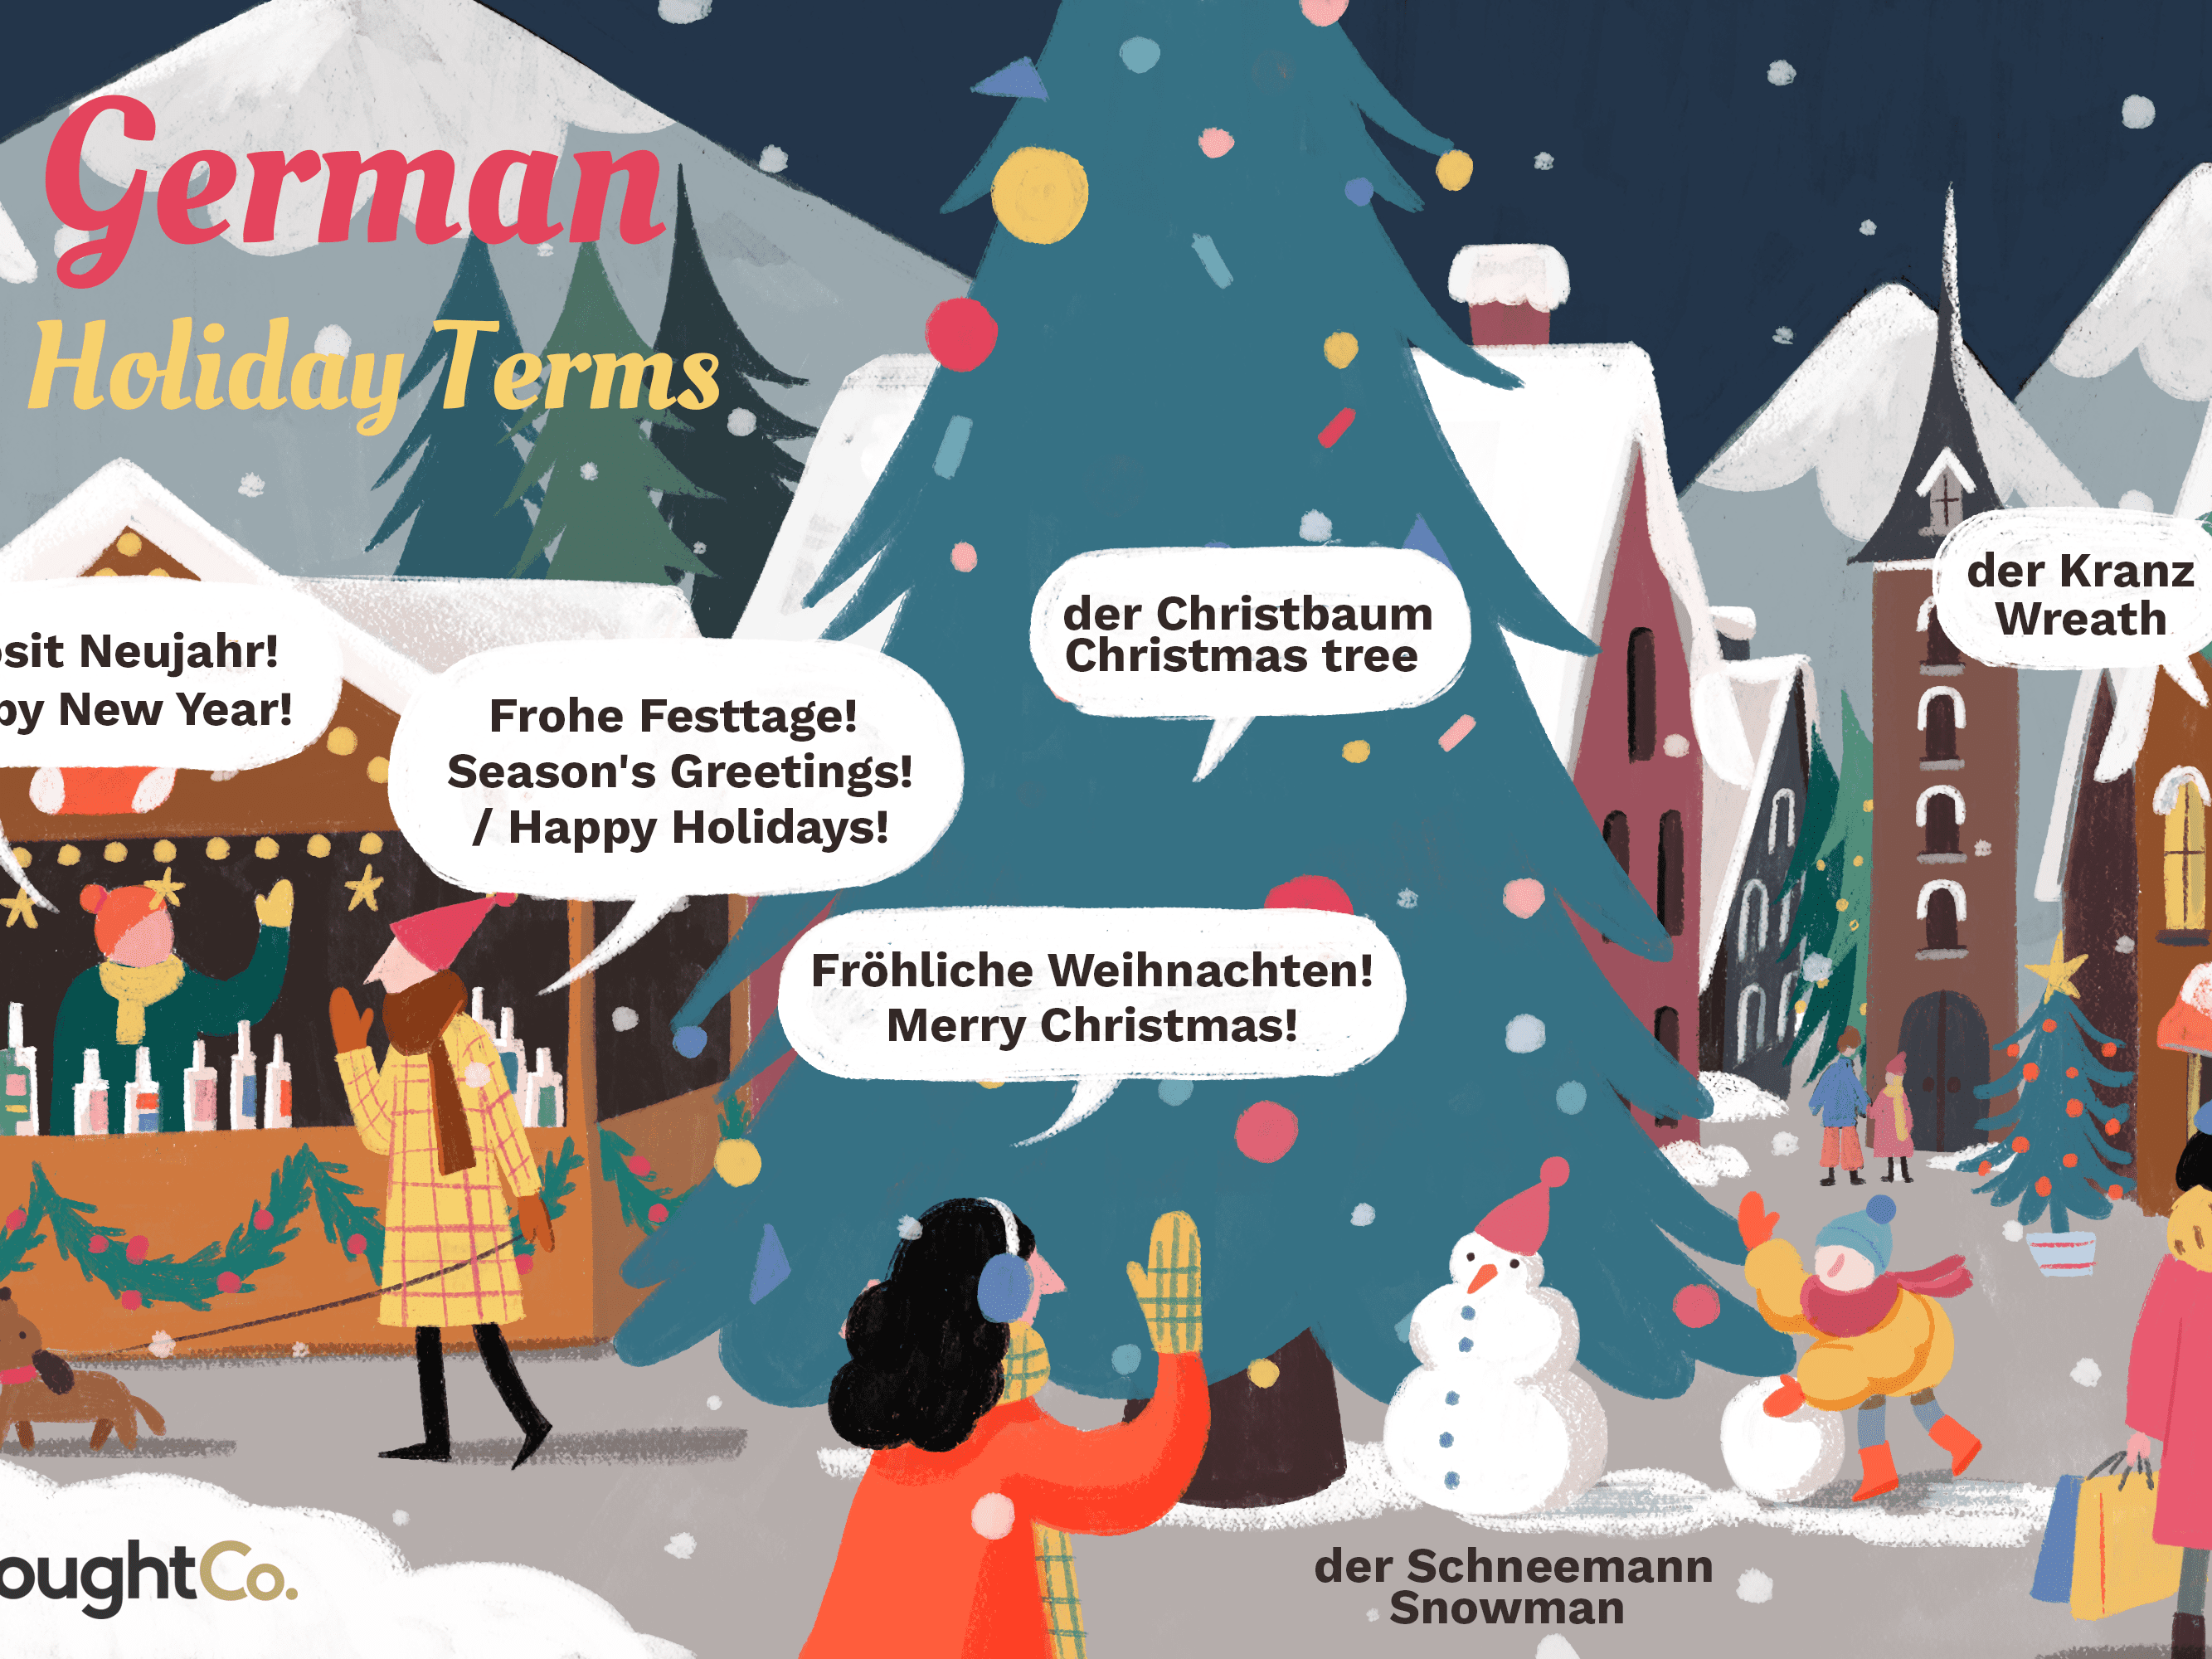 traditional holiday terms in german traditional holiday terms in german